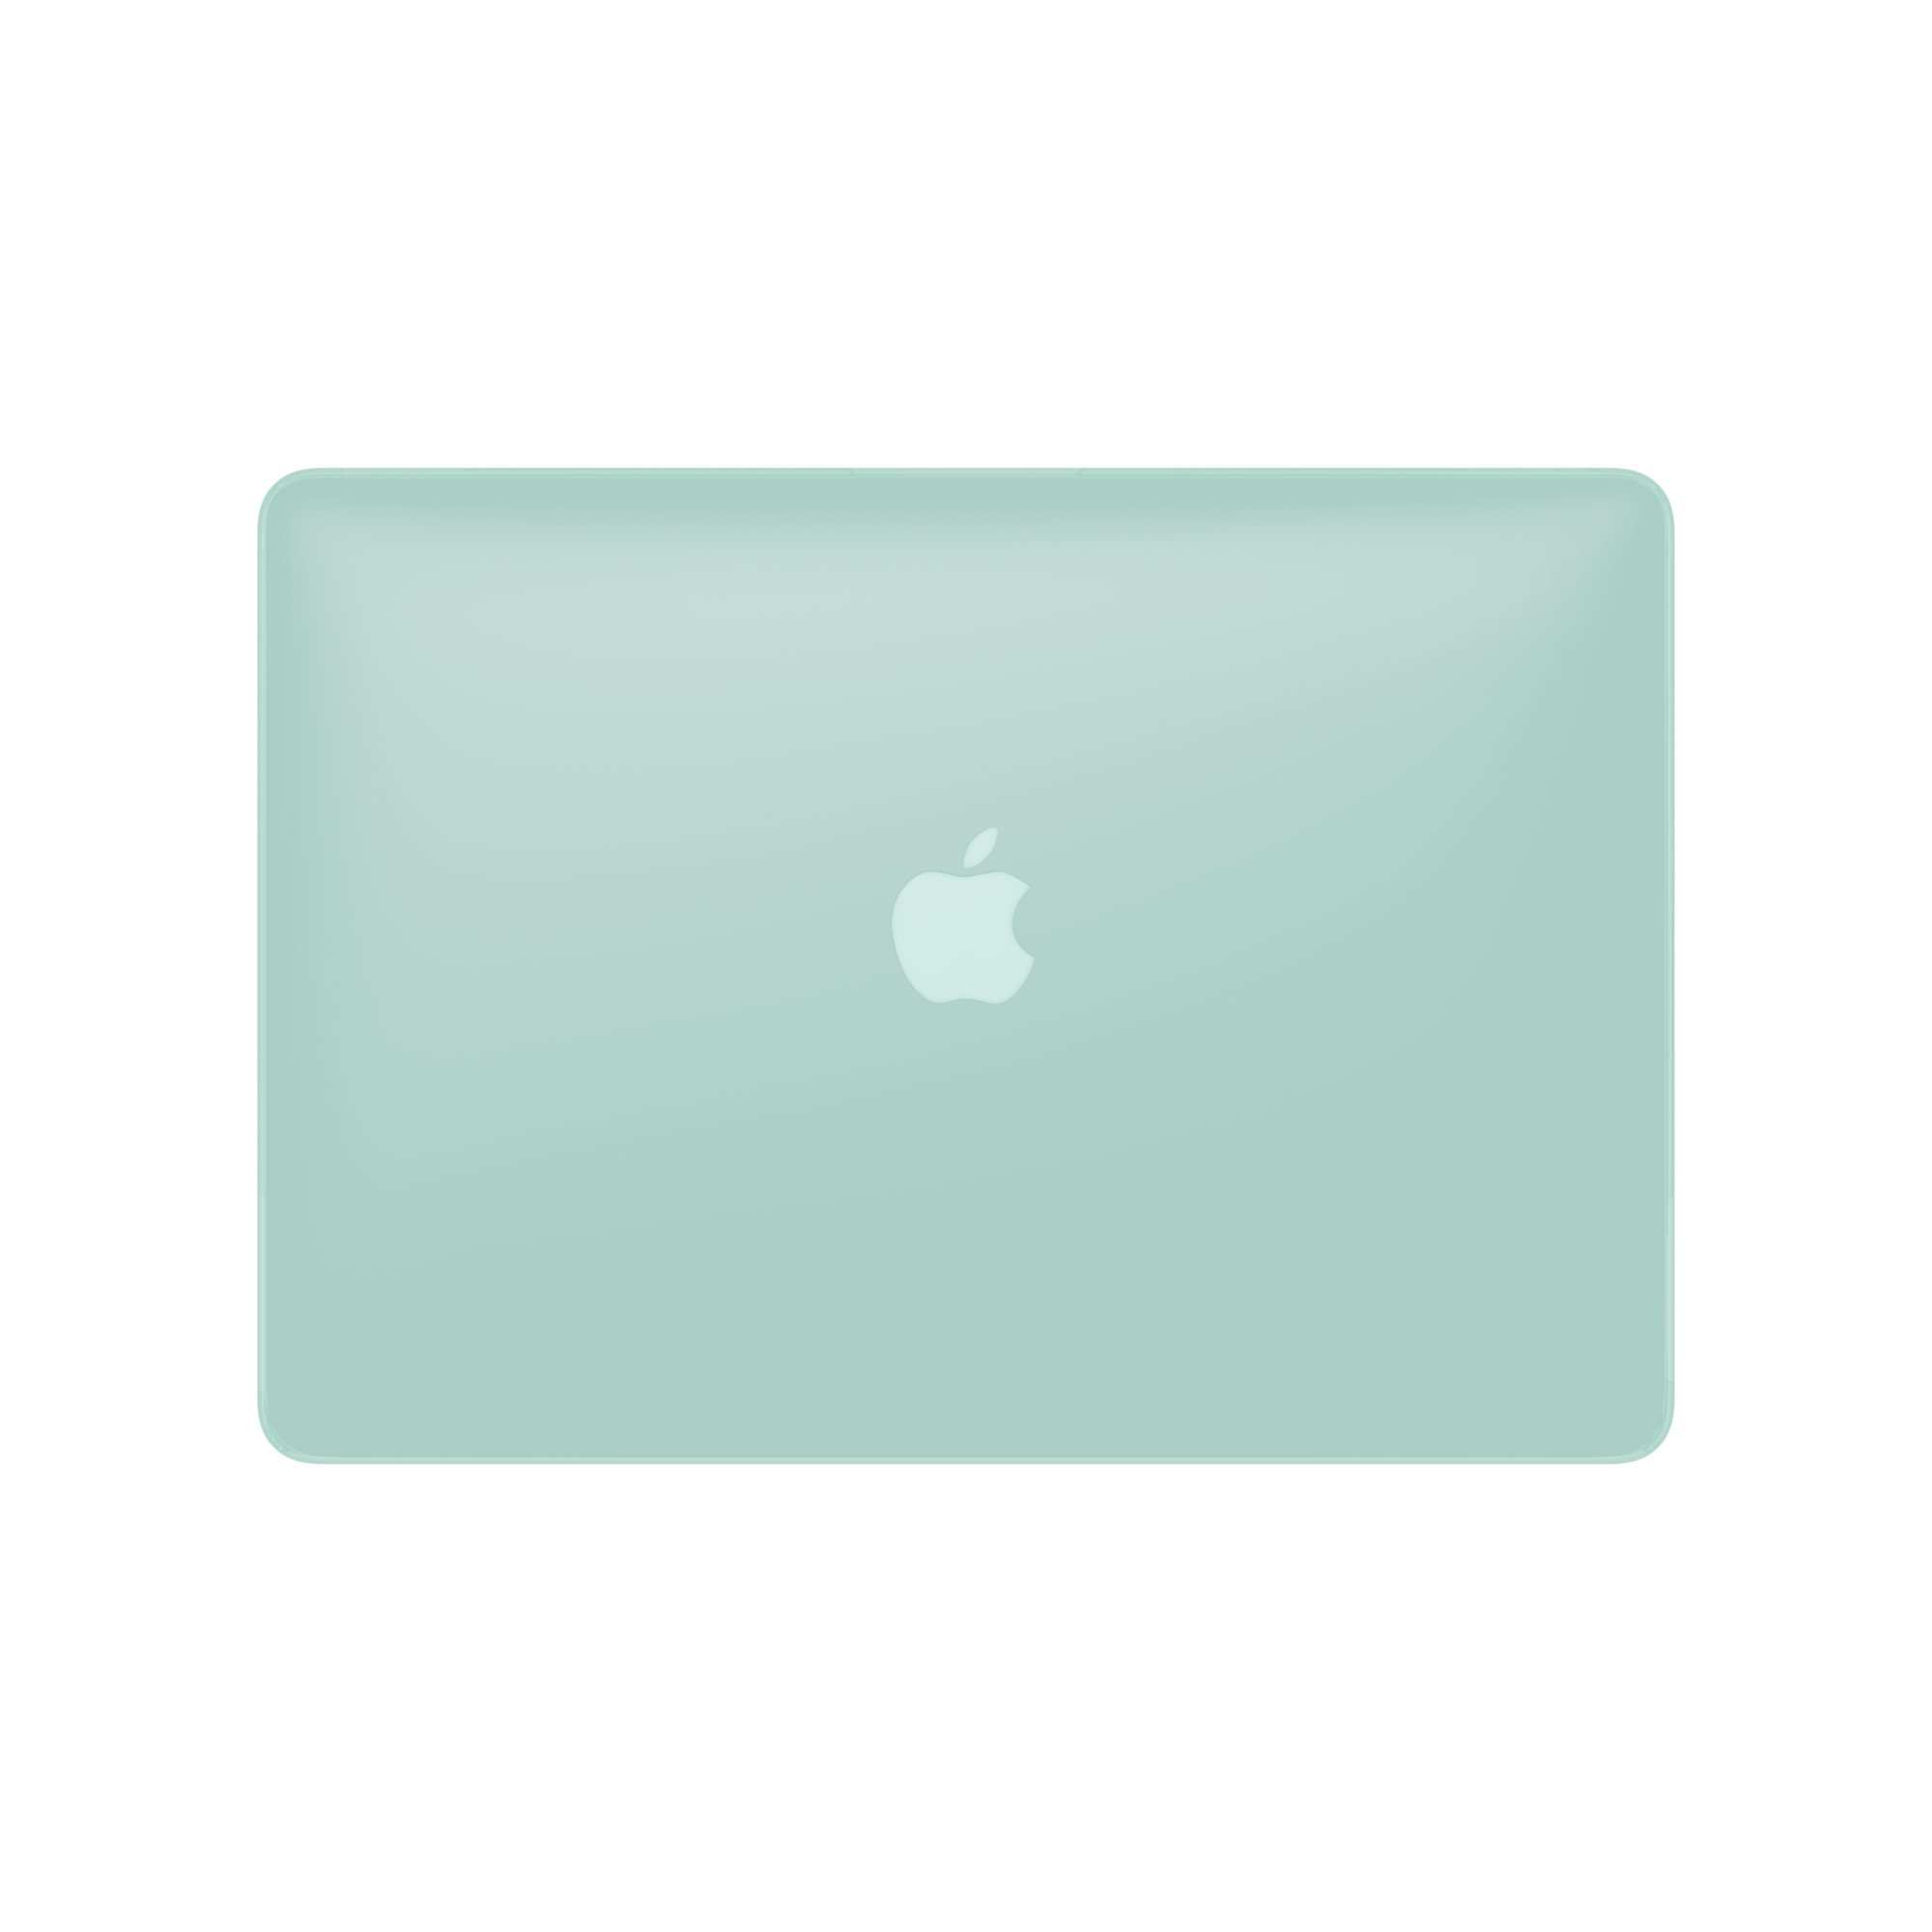 Speck Products 110608-7353 SmartShell Case, MacBook Pro 13'' (with and Without Touch Bar), Jadite Teal by Speck (Image #4)